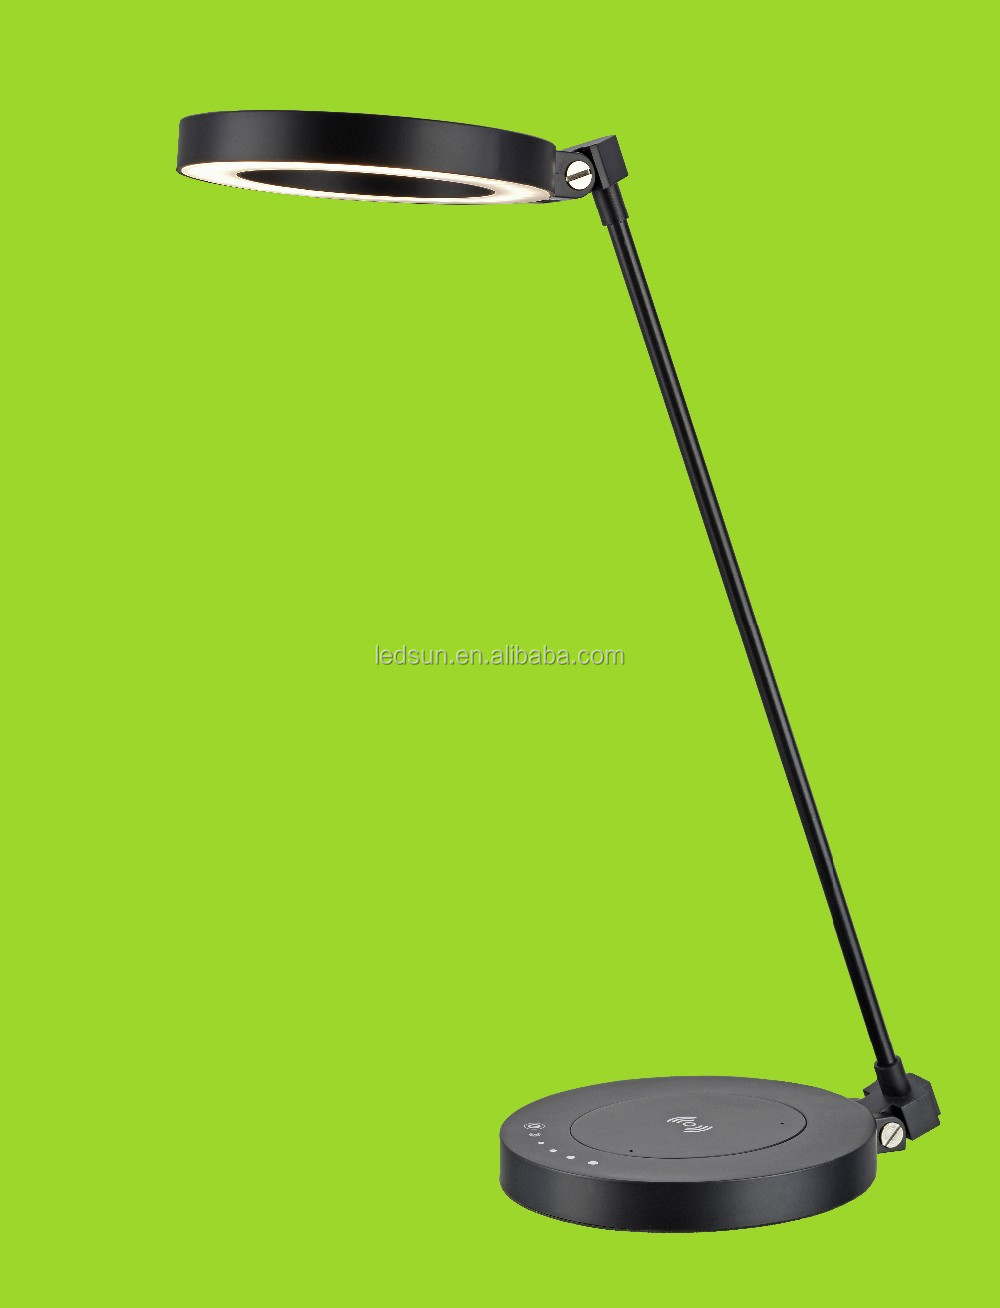 High power 3-level dimmable foldable reading table lamp led /ABS led desk lamp housing